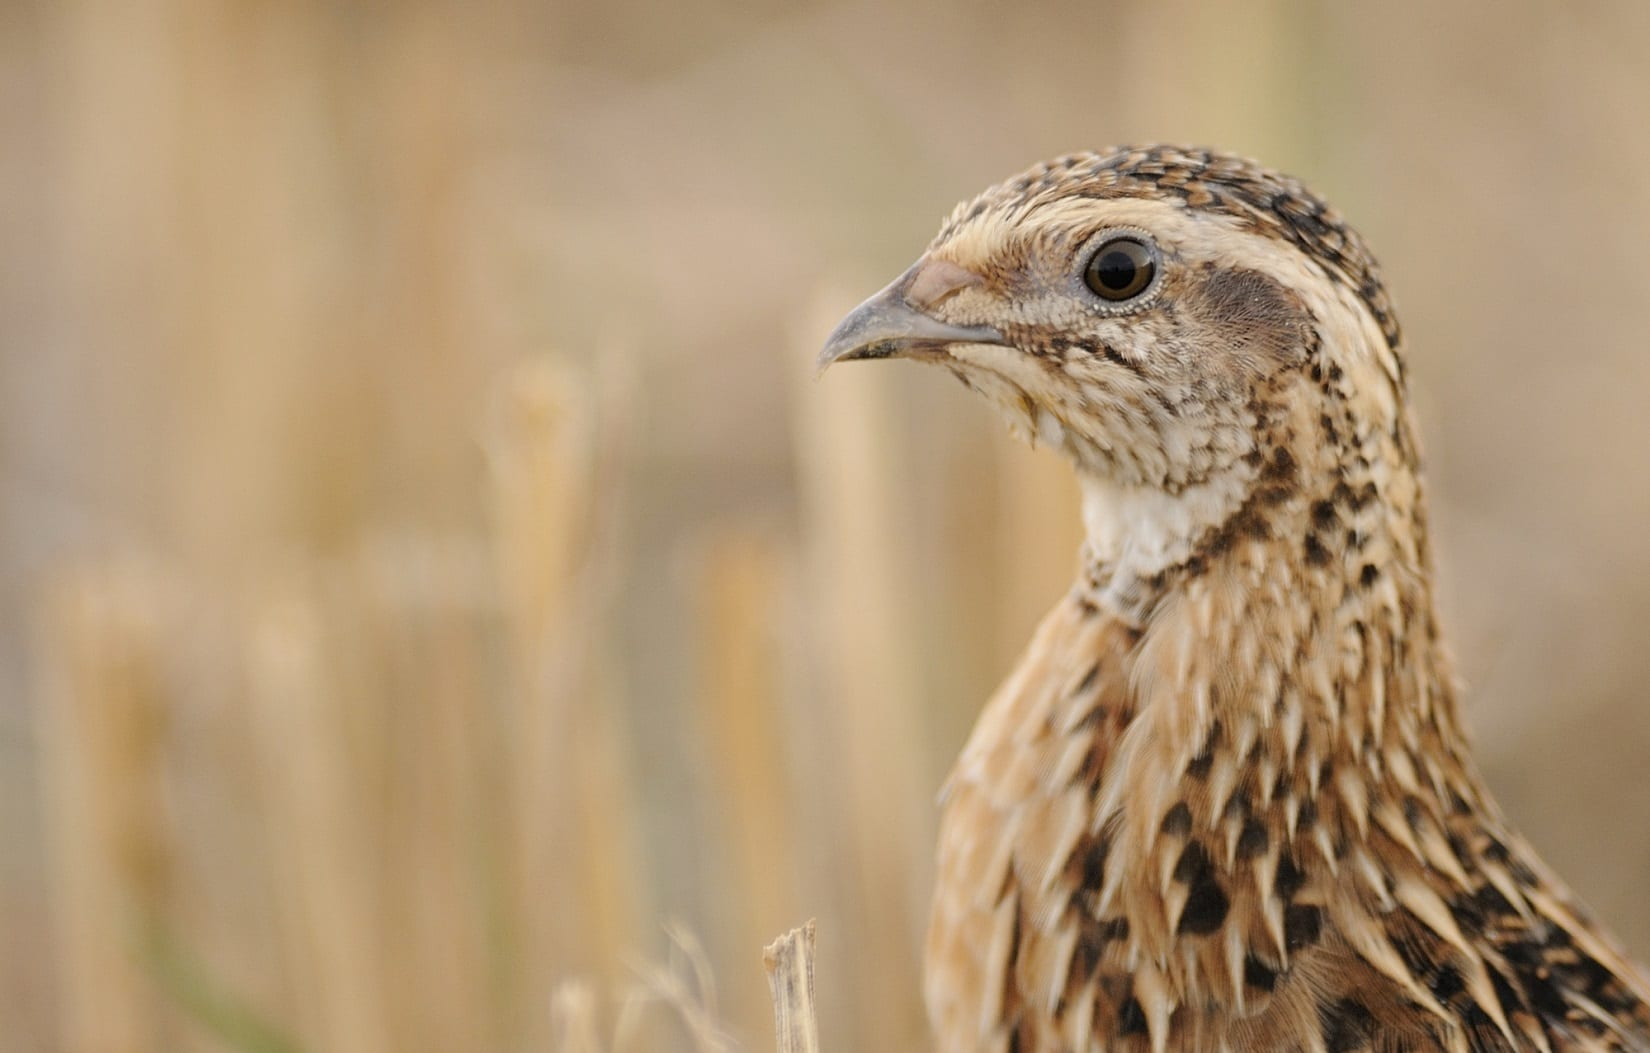 quail-close-up-side-profile